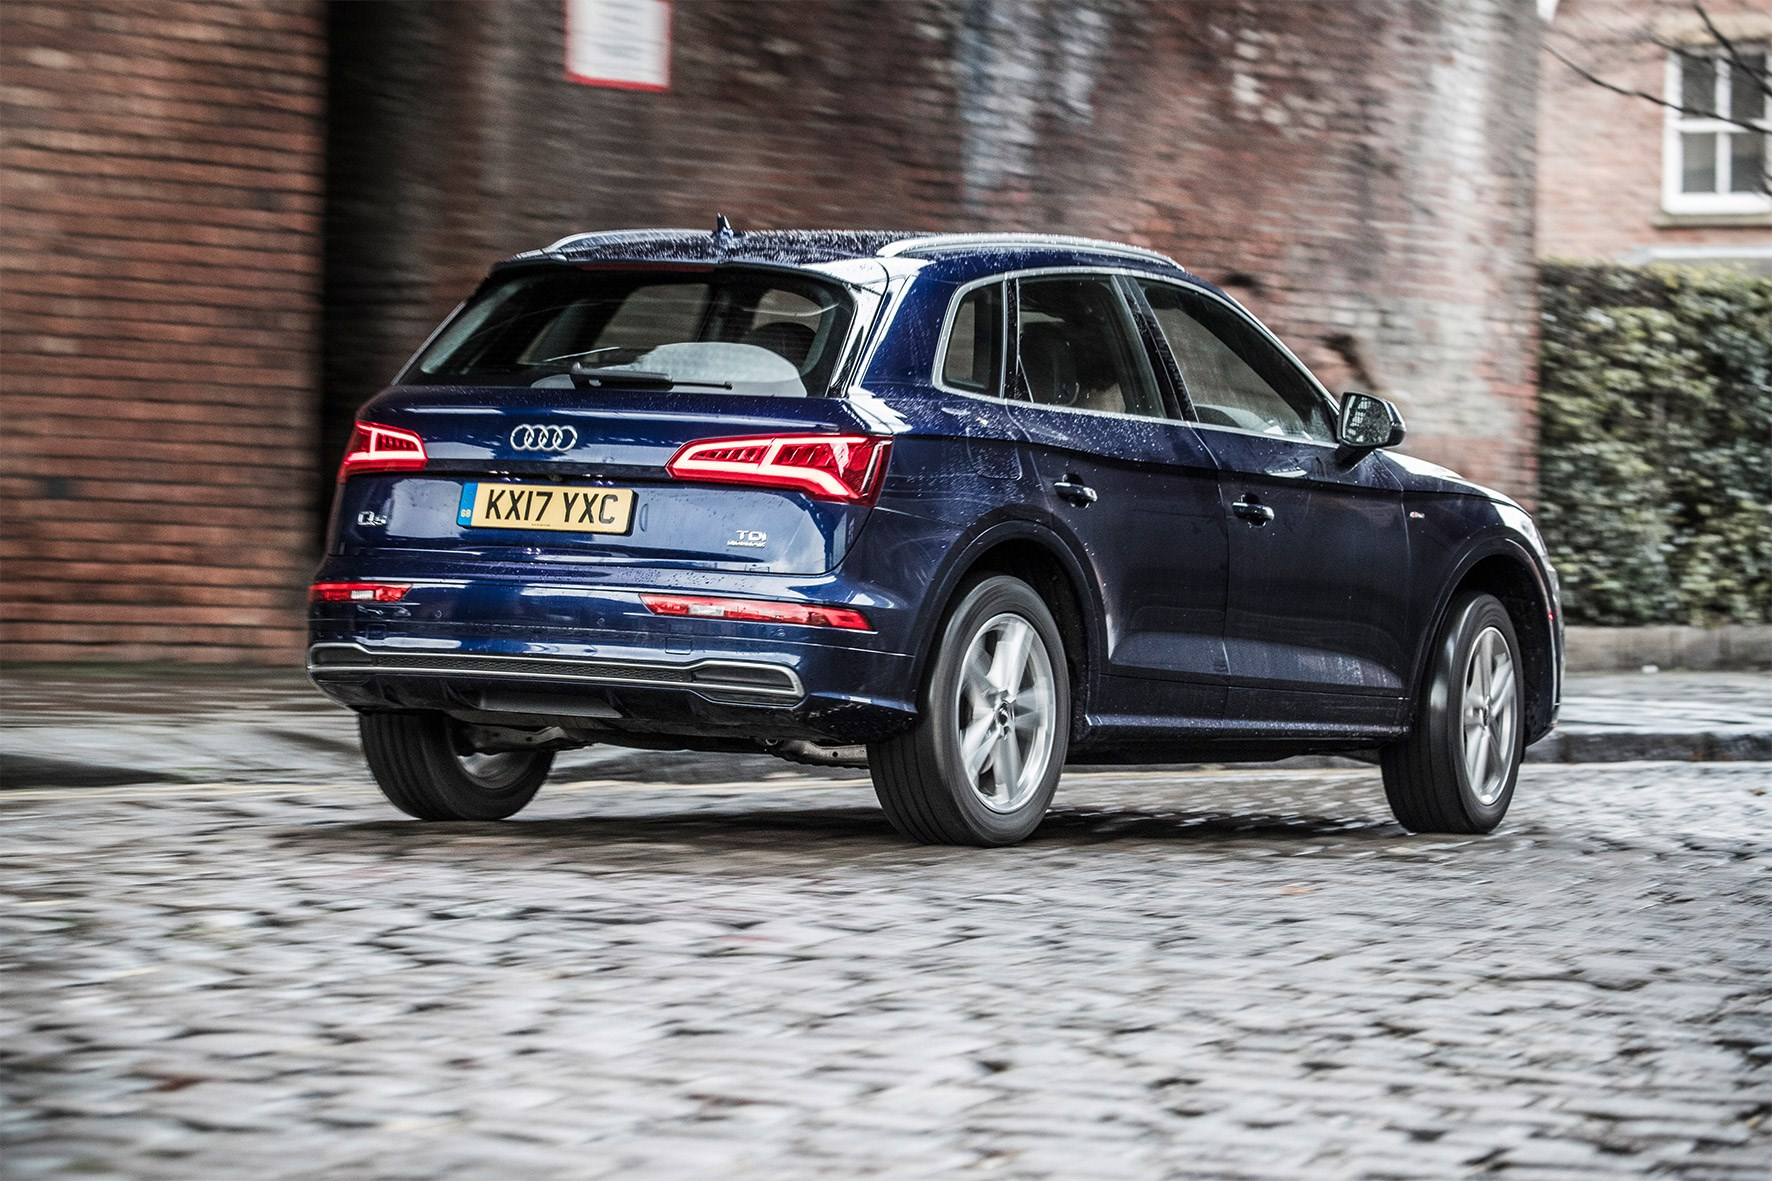 Bmw X3 Vs Audi Q5 Review